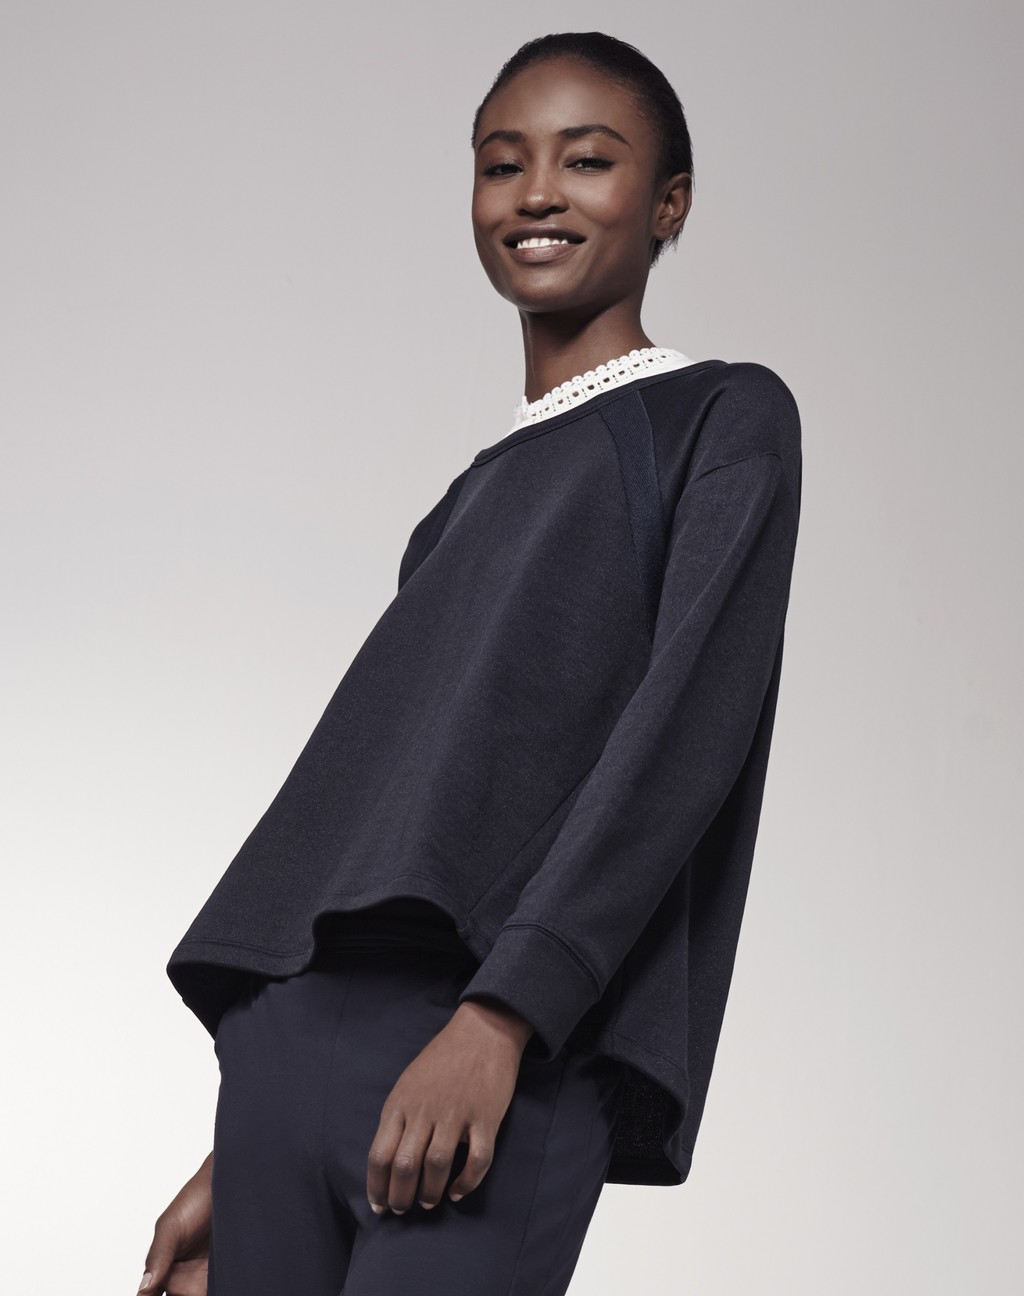 Luxe Sweat Top Navy - pattern: plain; neckline: high neck; style: sweat top; predominant colour: navy; occasions: casual; length: standard; fibres: cotton - 100%; fit: loose; sleeve length: long sleeve; sleeve style: standard; pattern type: fabric; texture group: jersey - stretchy/drapey; season: s/s 2016